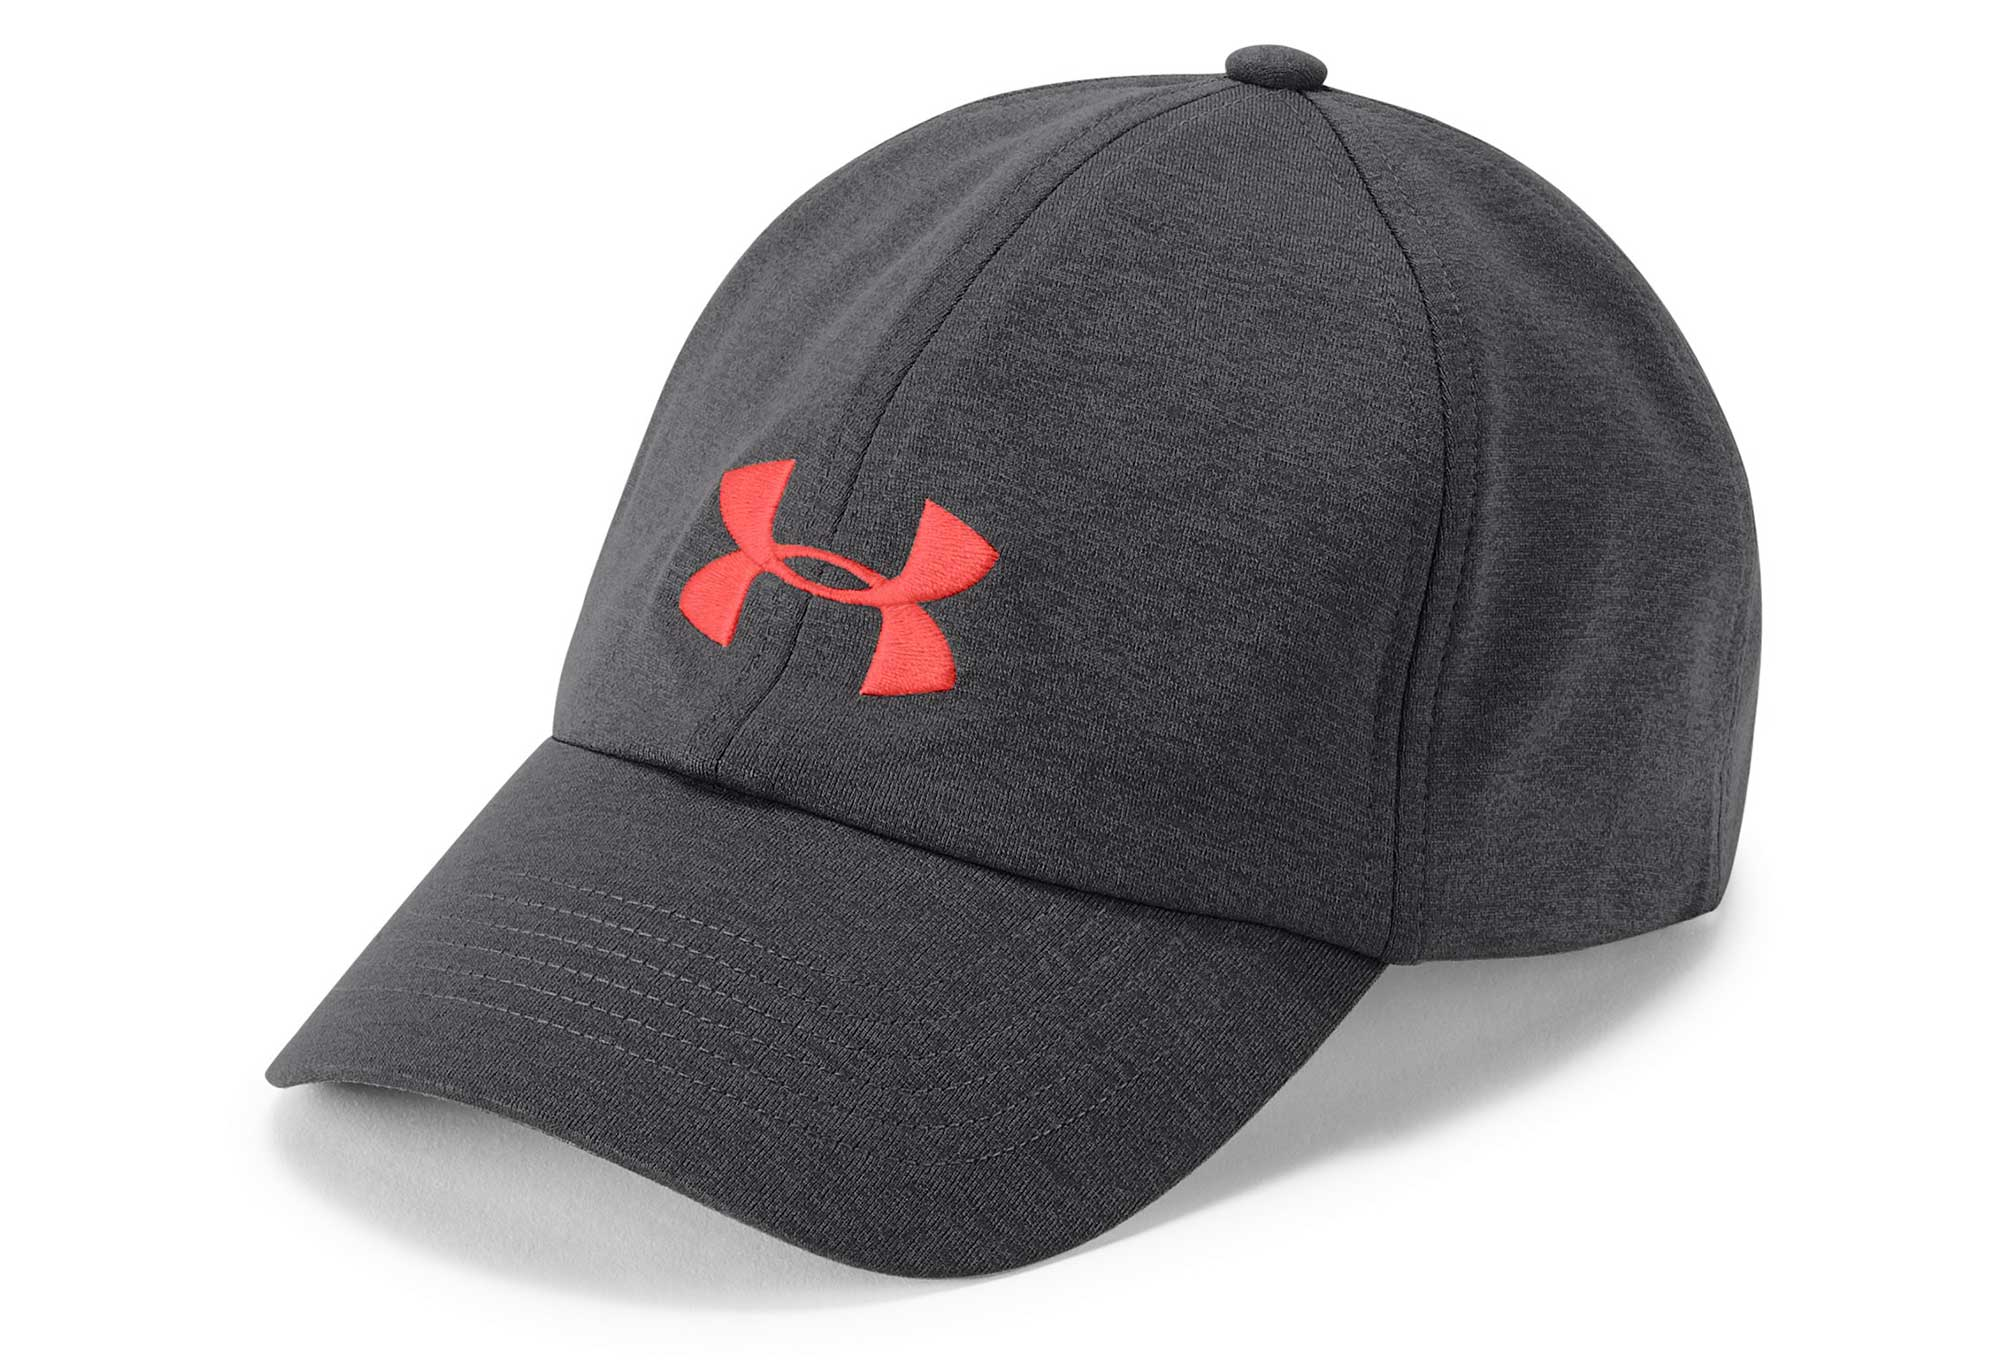 da807f0cad1 Under Armour Microthread Renegade Women Cap Black After Burn Red ...